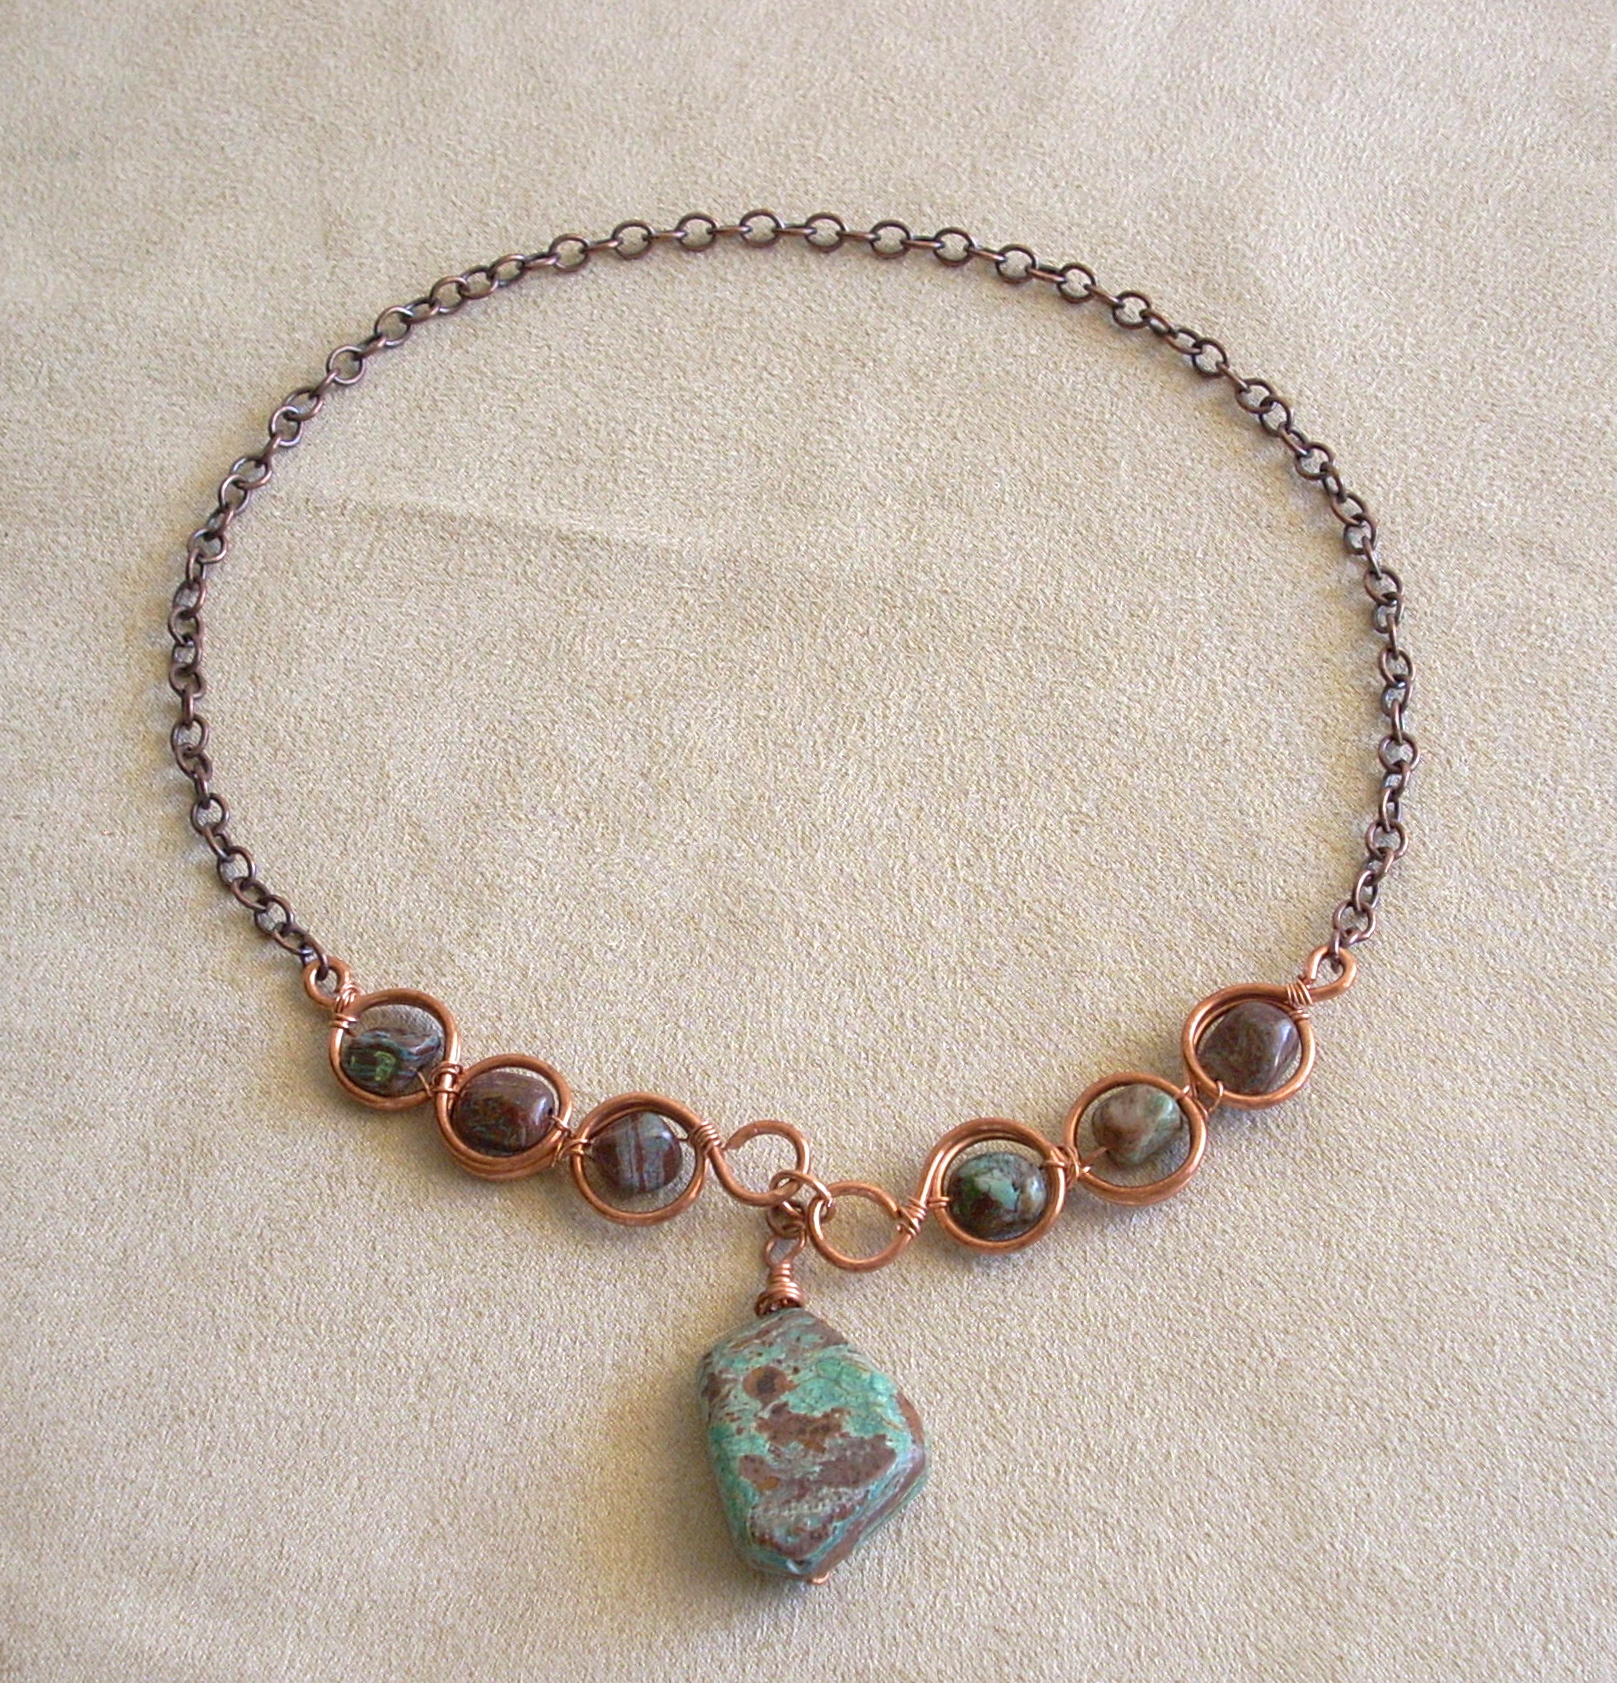 Chrysocolla Jasper with Copper Wire